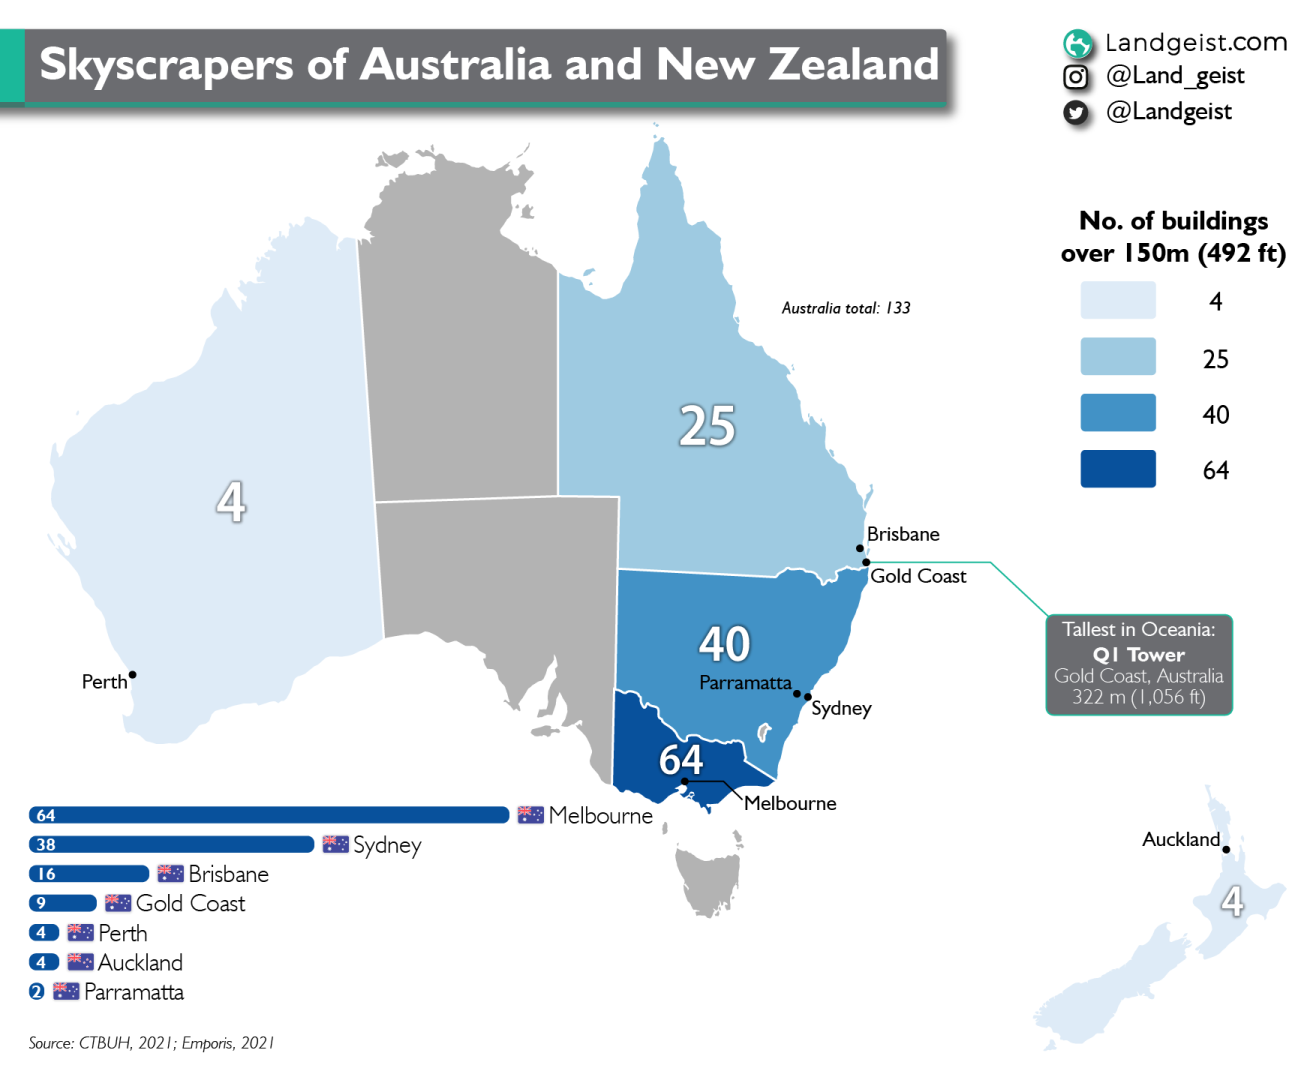 Map of the skyscrapers in Australia and New Zealand.